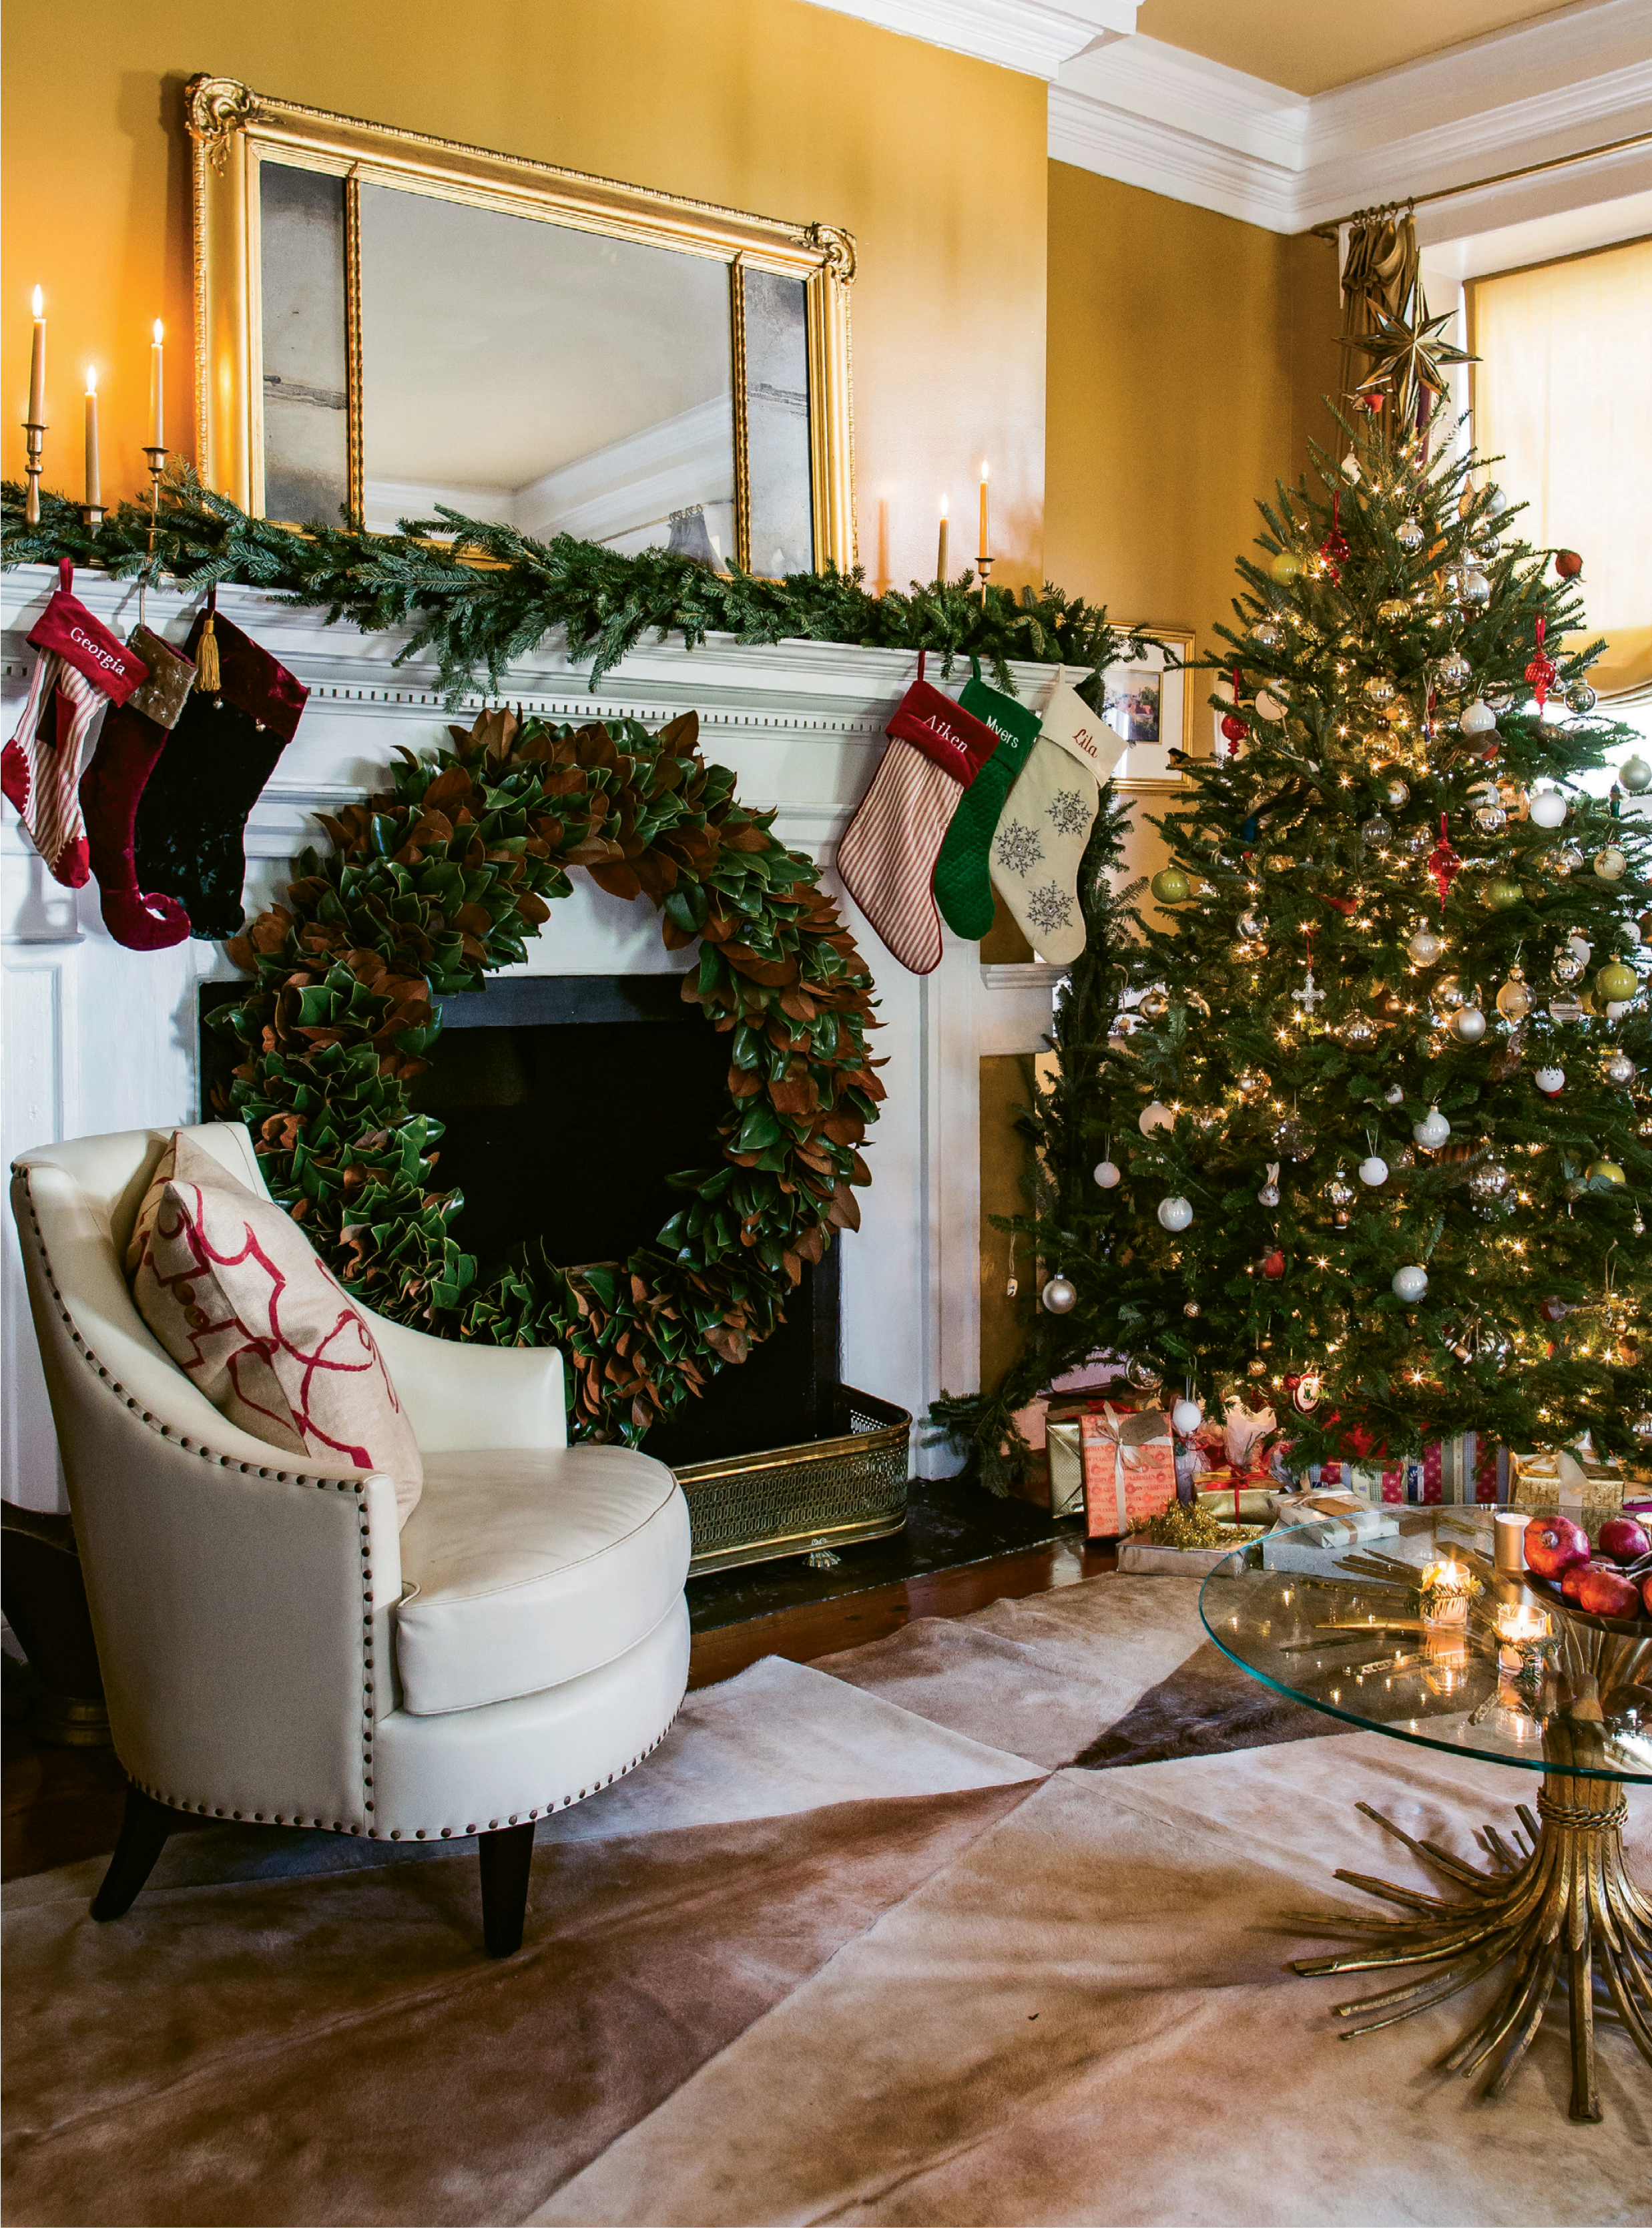 "LIGHT IT UP: A Christmas tree with lights and presents more than suffices for décor this time of year, says Tara. She added simple metallic balls and her children's homemade ornaments to the mix. TIP: Tara's go-to for ""thick, gorgeous foil wrapping paper"" is T.J. Maxx."